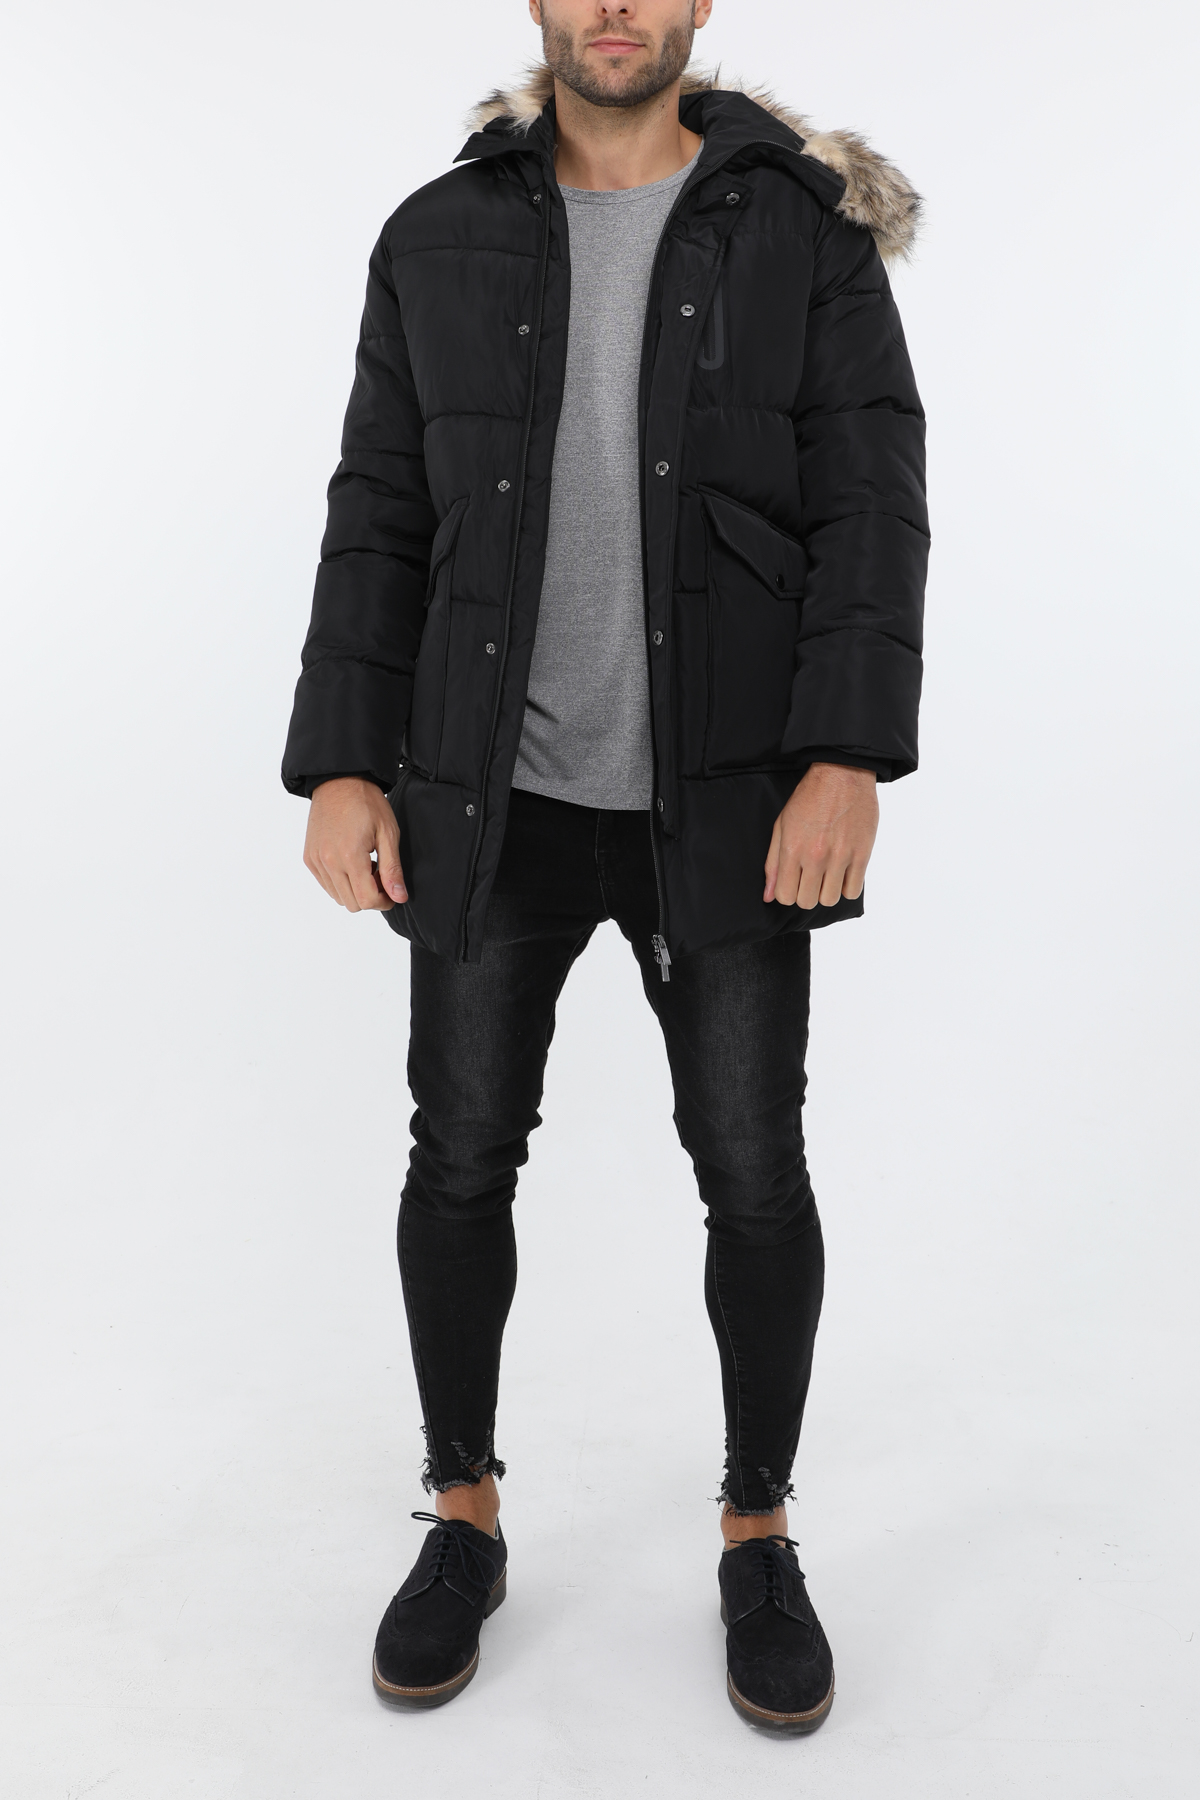 Manteaux Homme Noir Zelia  51922H #c eFashion Paris